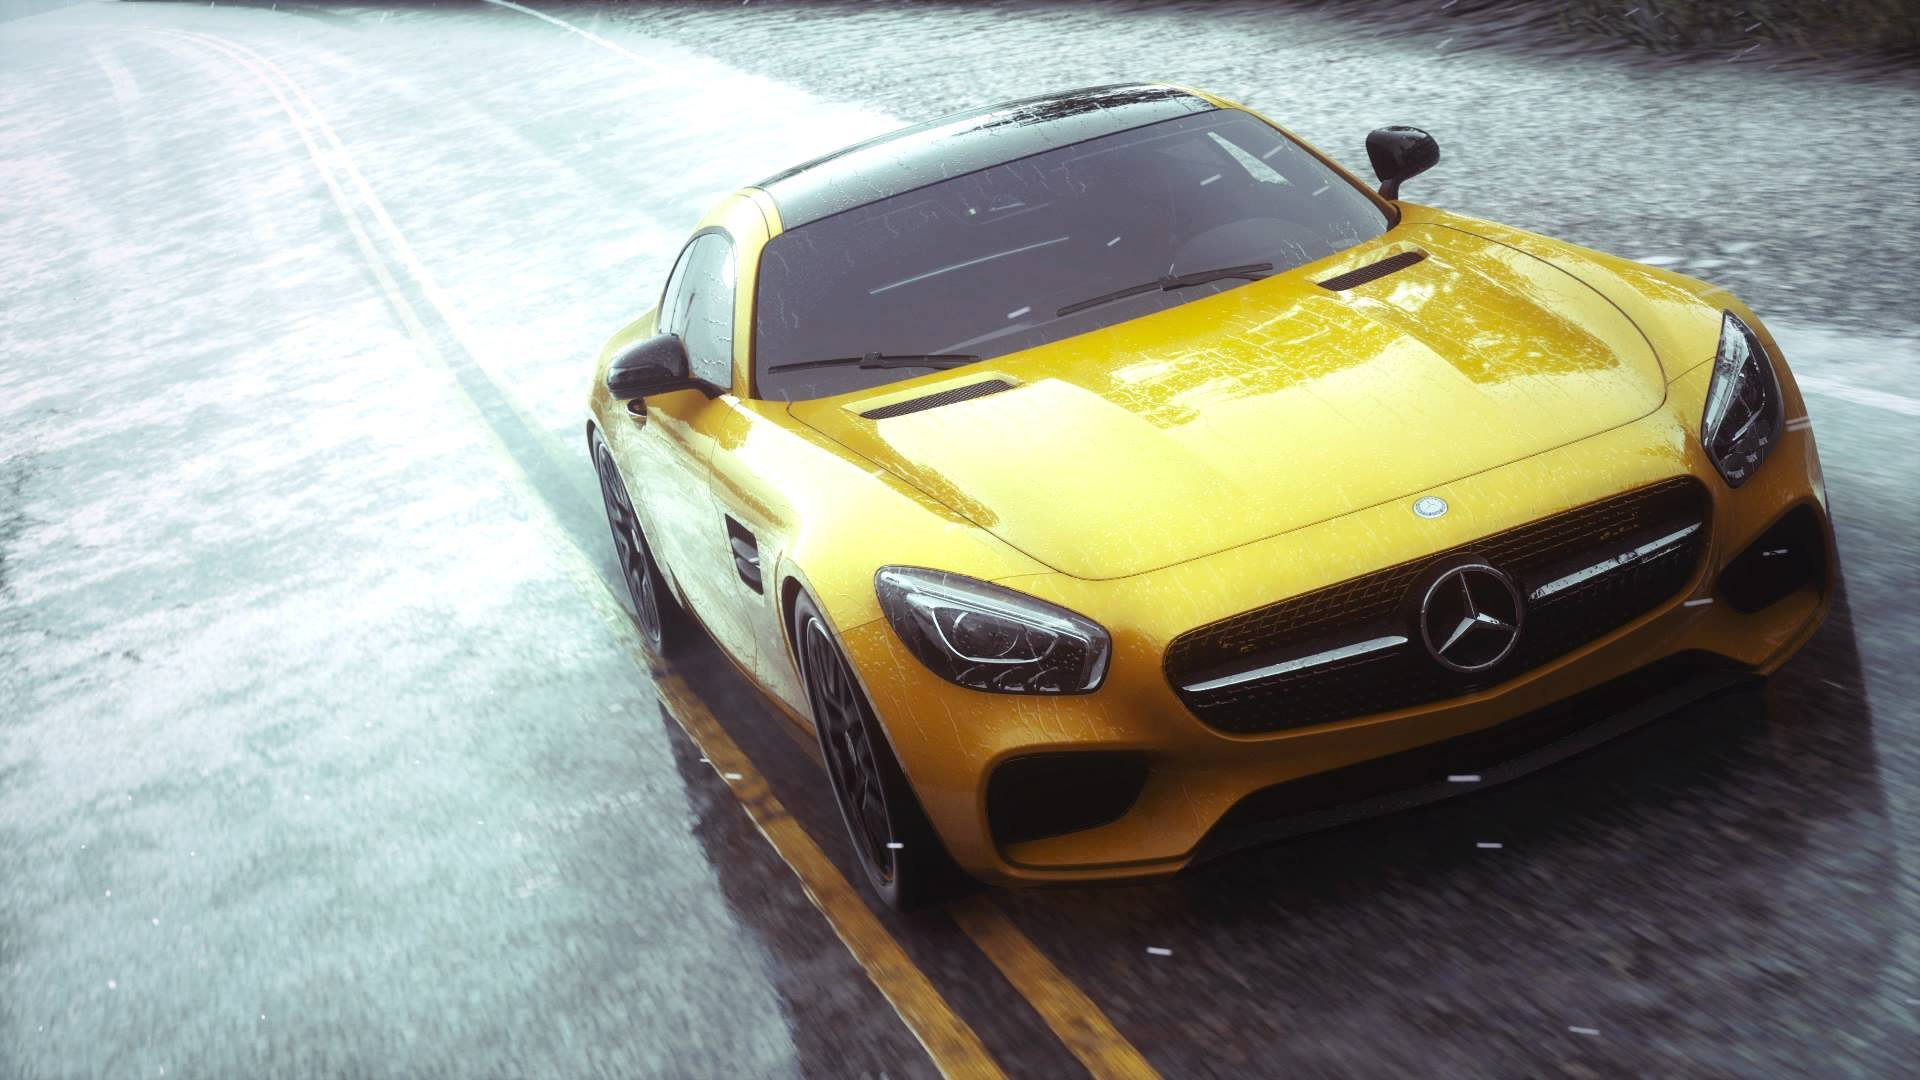 DriveClub Servers to Be Shut Down in 2020, Game Gets Delisted This